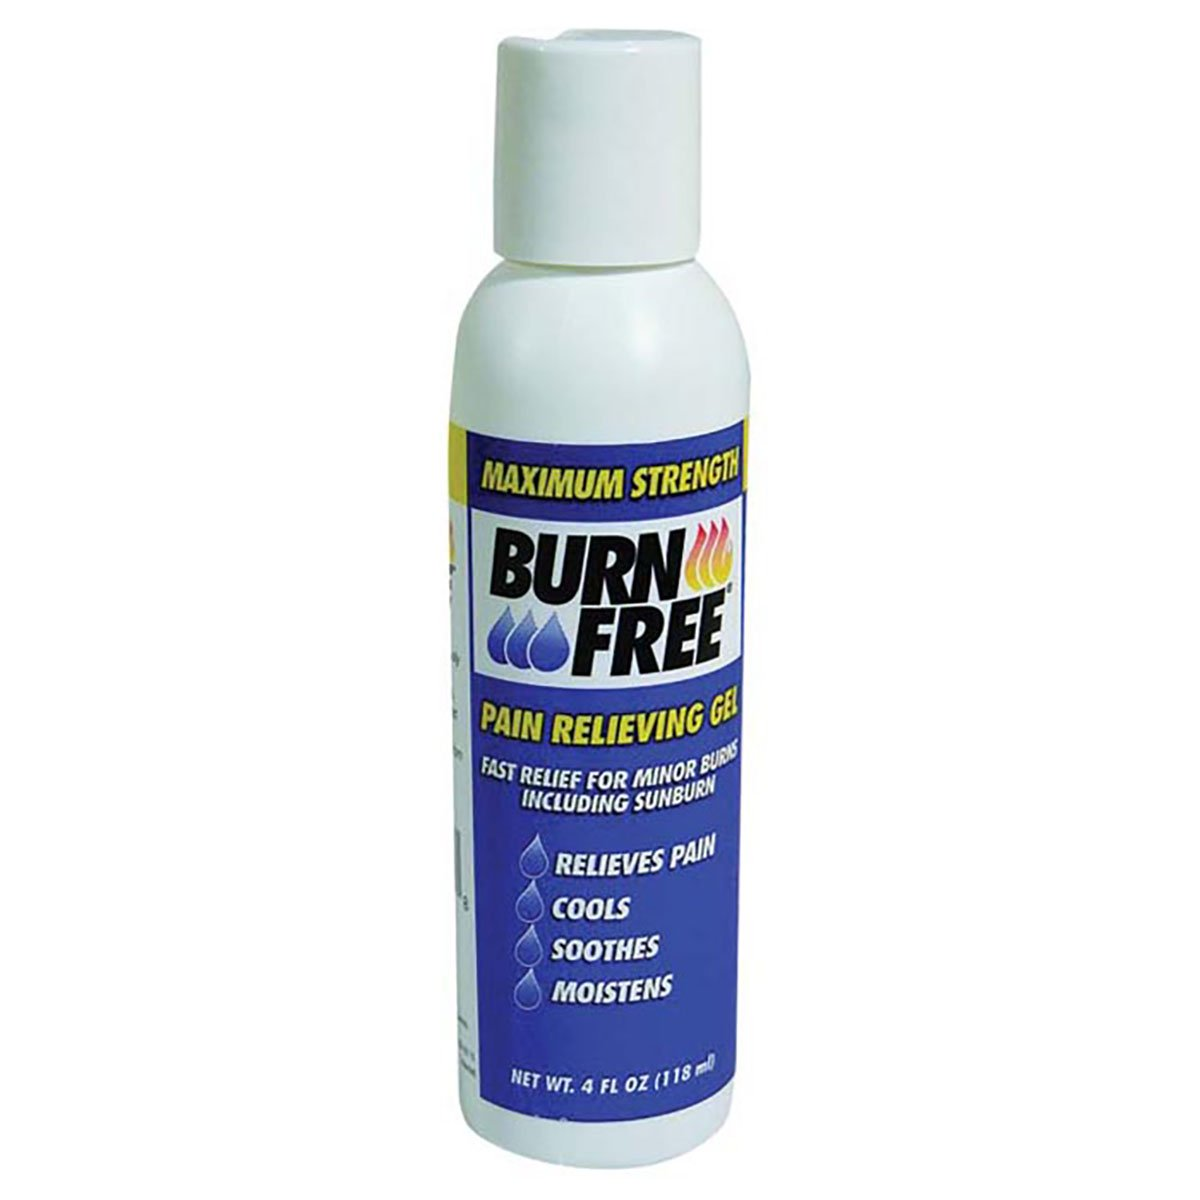 Burn Free Pain Relieving Gel, Maximum Strength- Fast relief for minor burns including sunburn